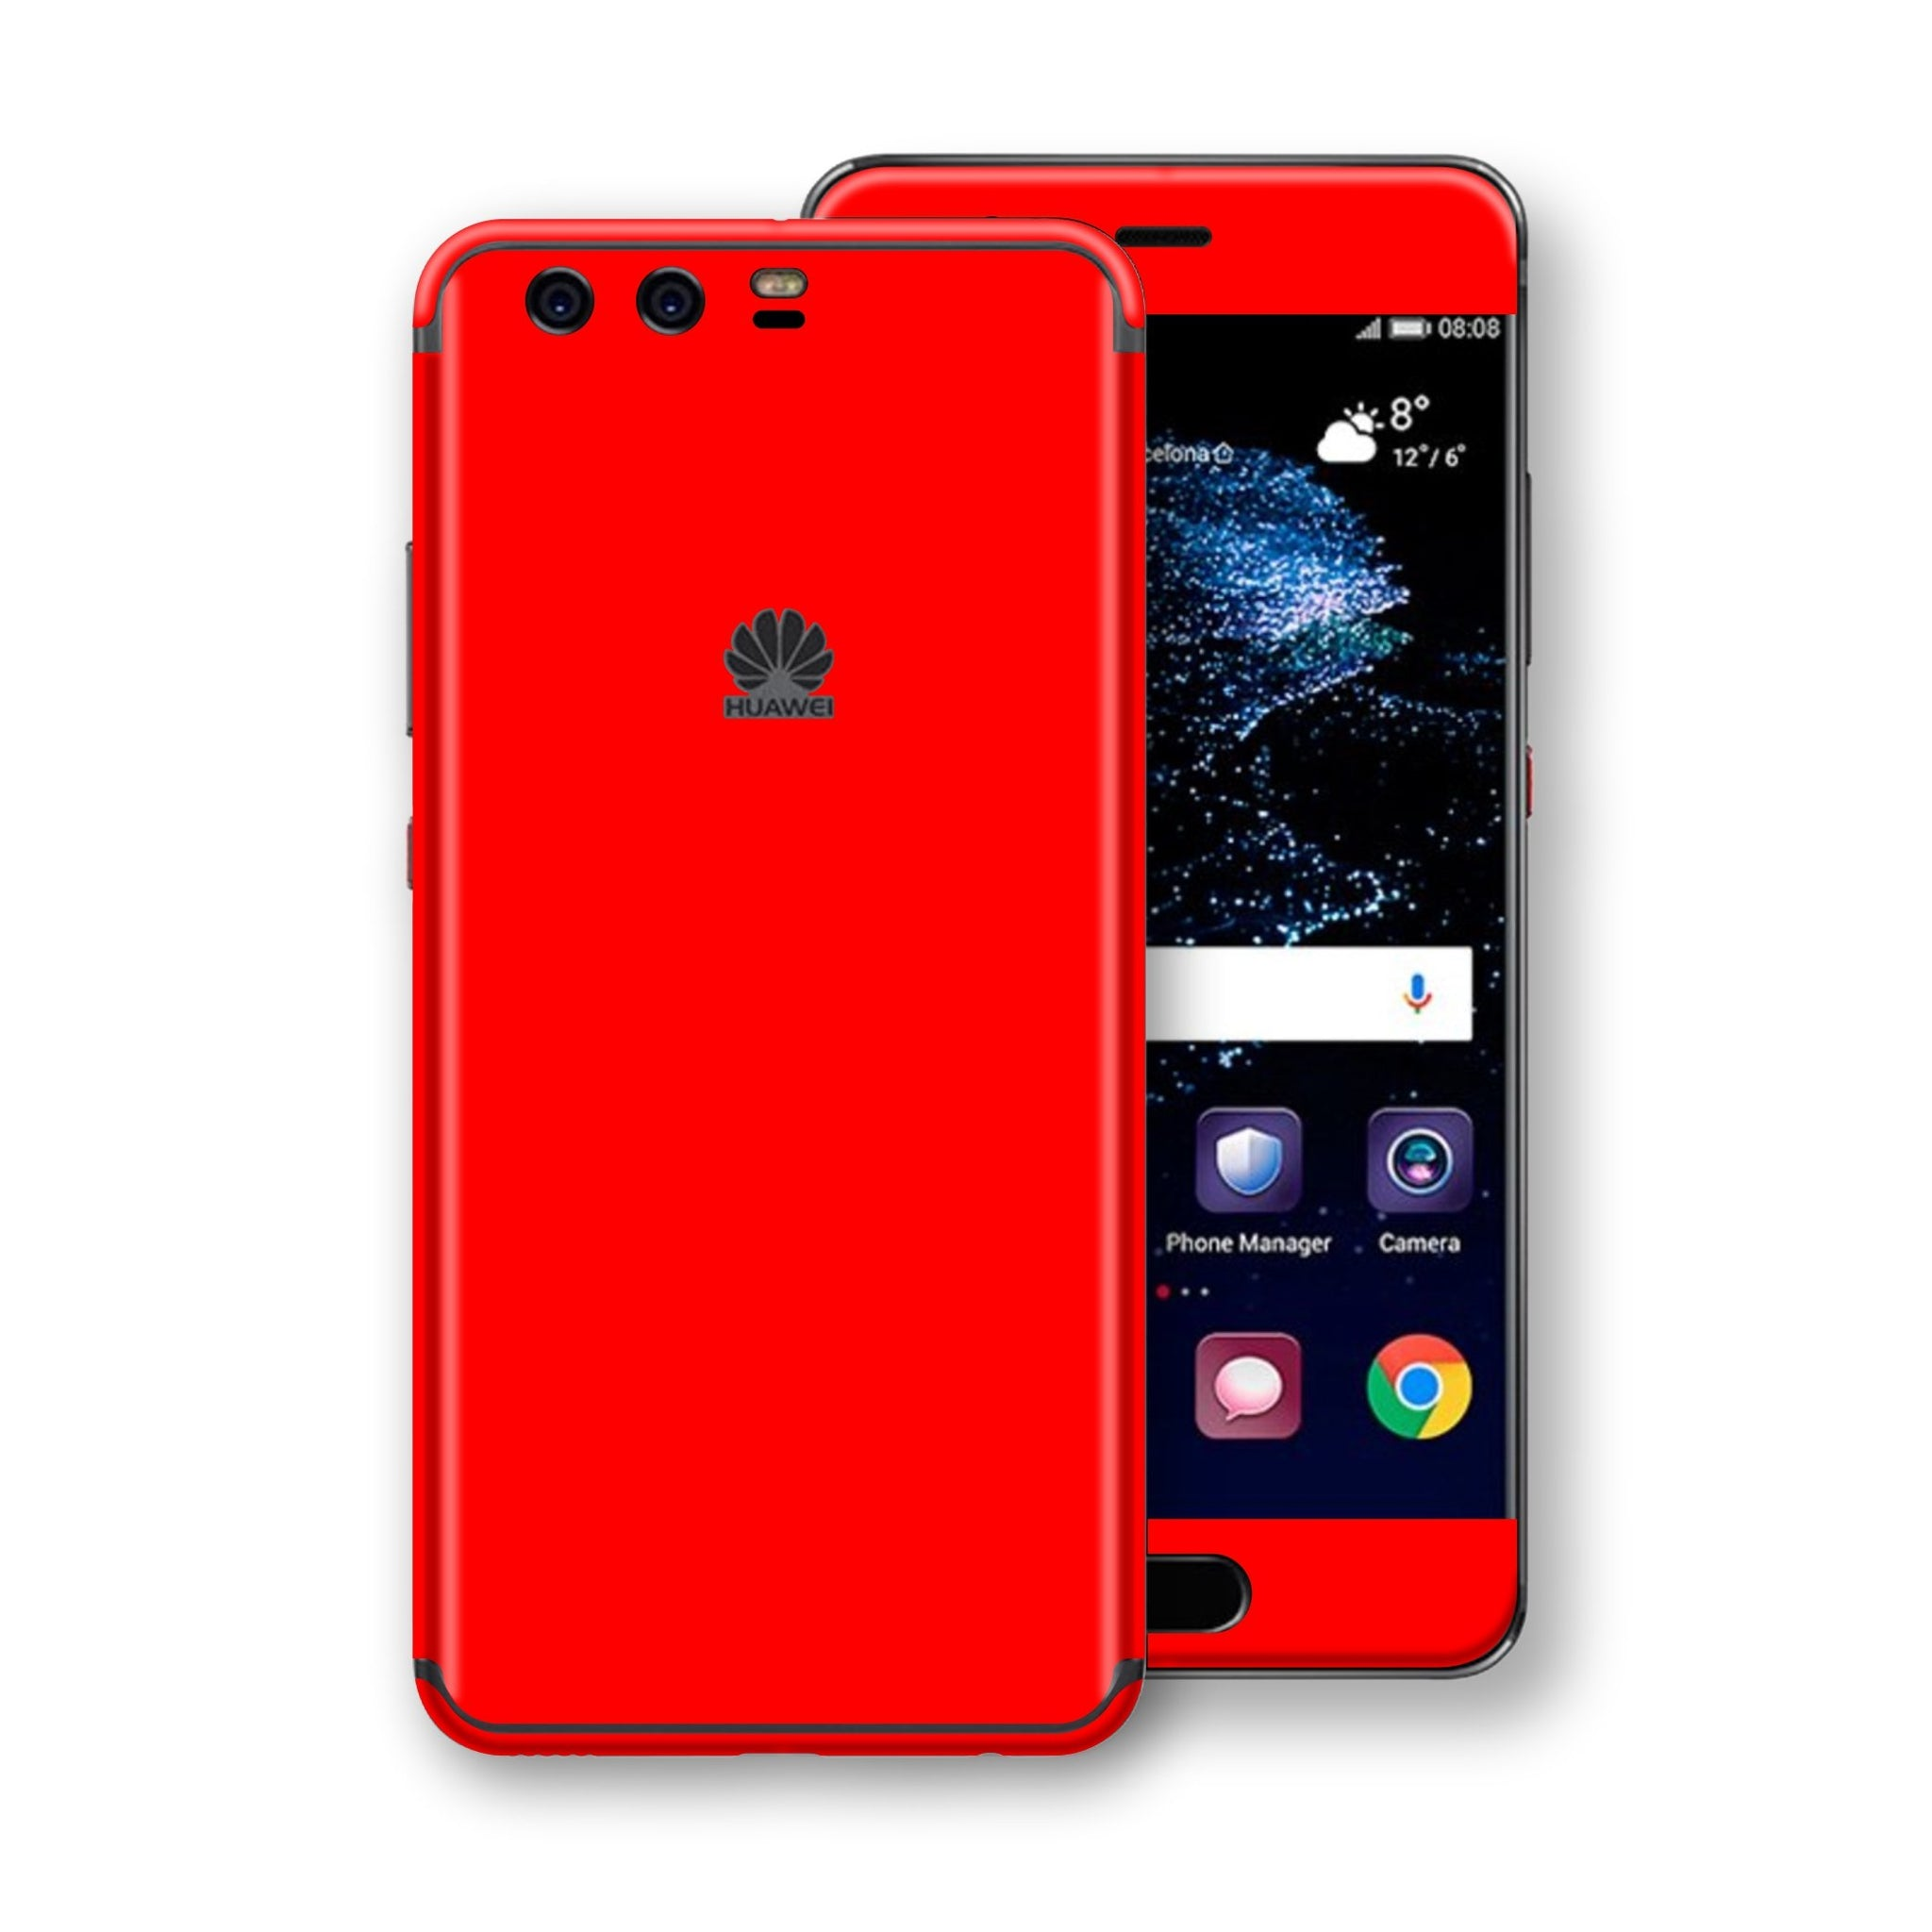 Huawei P10  Bright Red Glossy Gloss Finish Skin, Decal, Wrap, Protector, Cover by EasySkinz | EasySkinz.com